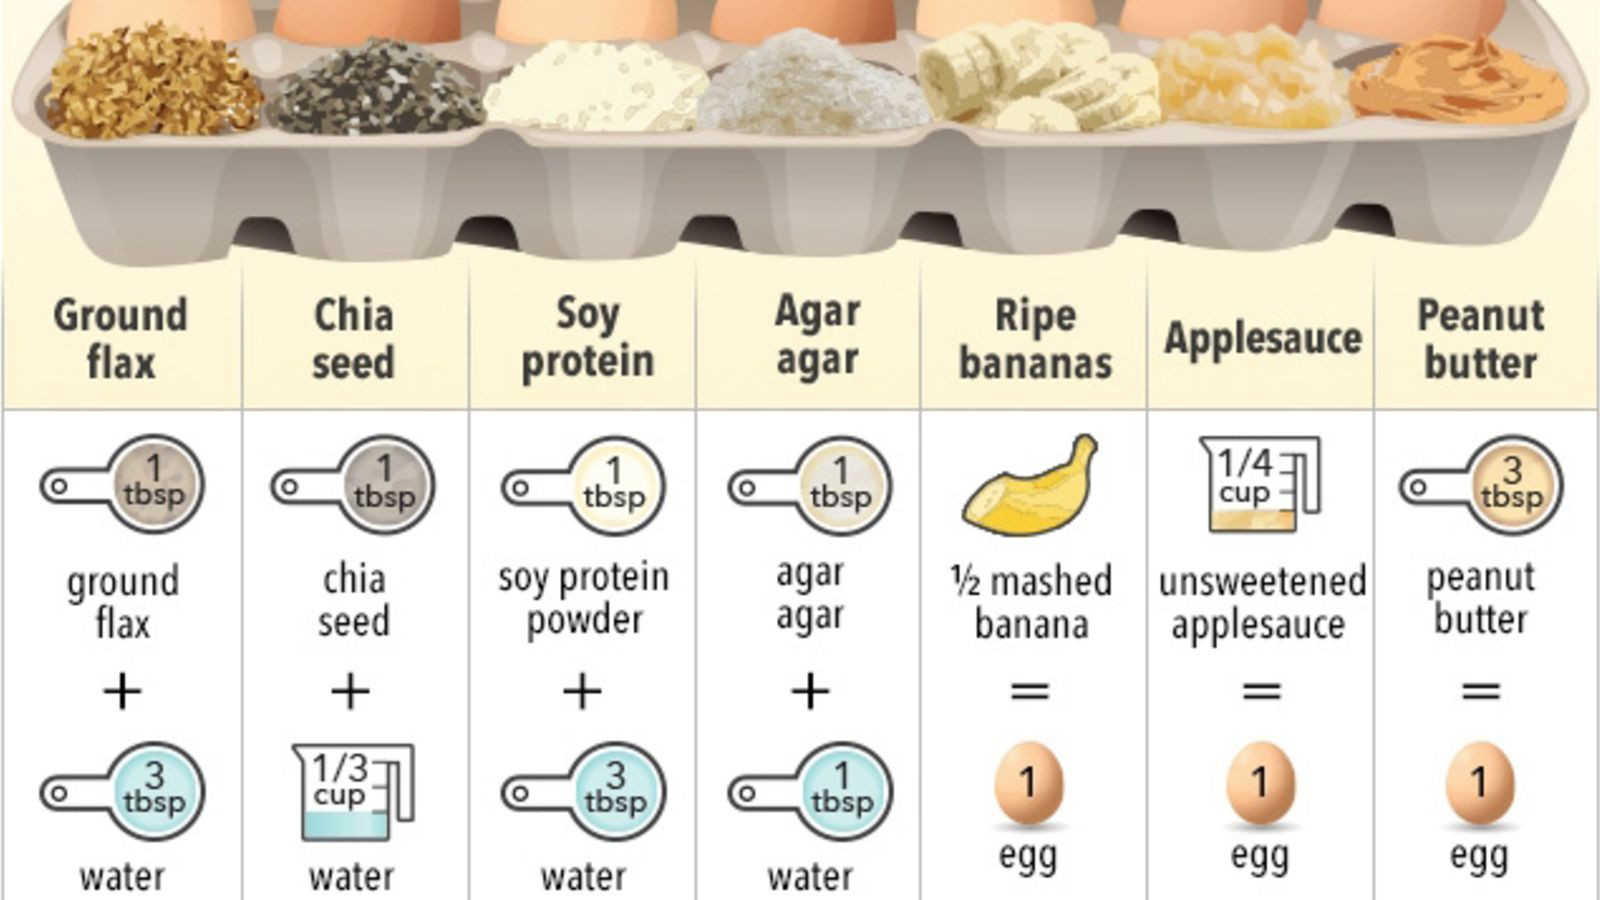 Substitute Applesauce For Eggs  This Cheat Sheet Shows the Best Egg Substitutes for Baking